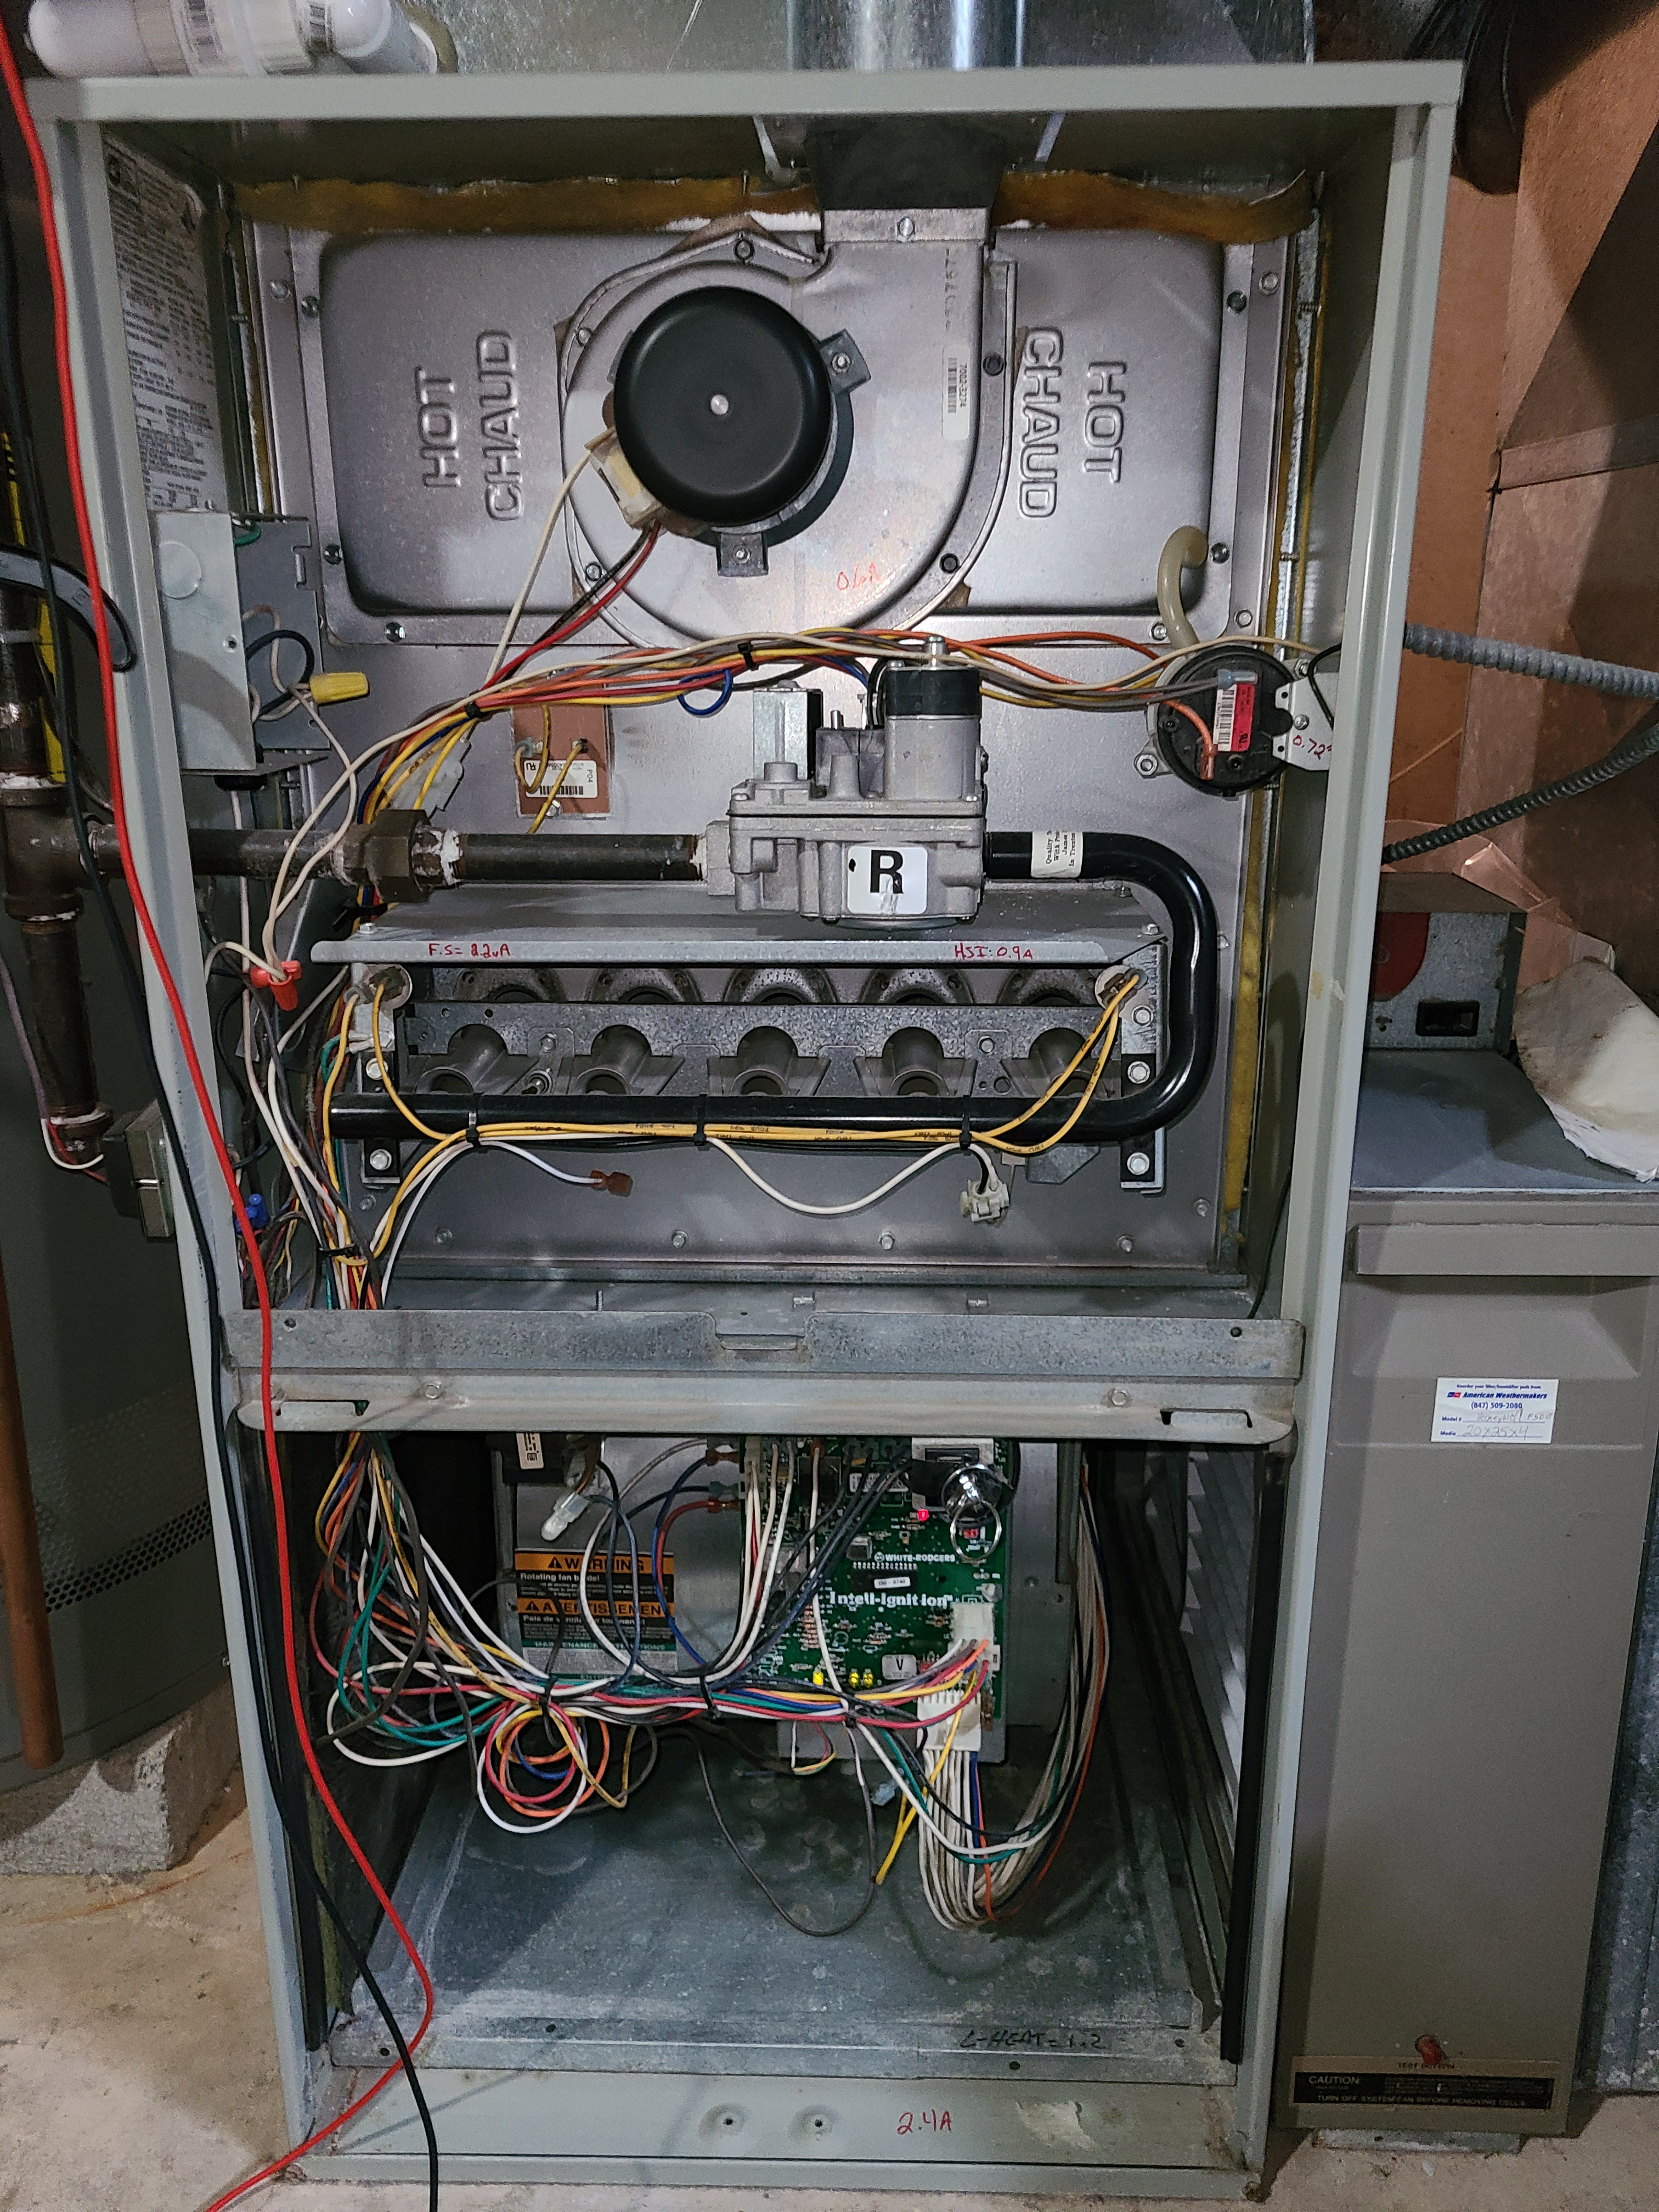 Tranr furnace fall clean and check. System tuned up and ready for winter.